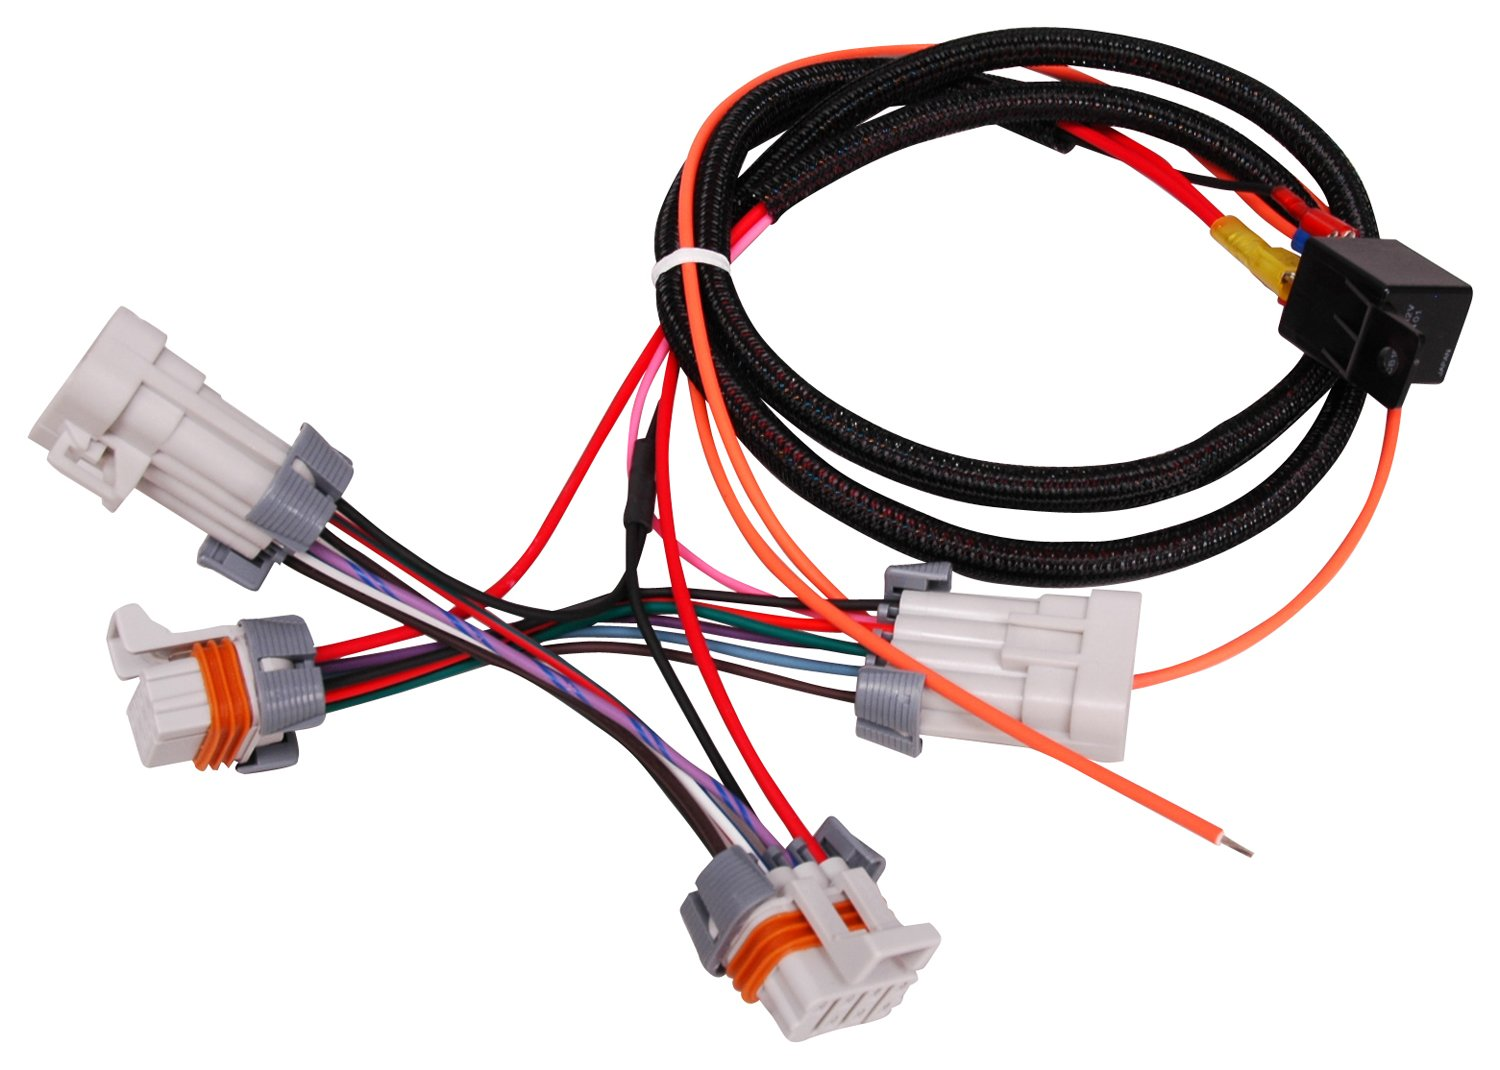 Msd Coil Wire Harness Wiring Diagram Sample Gm Ballast Resistor 88867 Ls Power Upgrade Ford Ranger